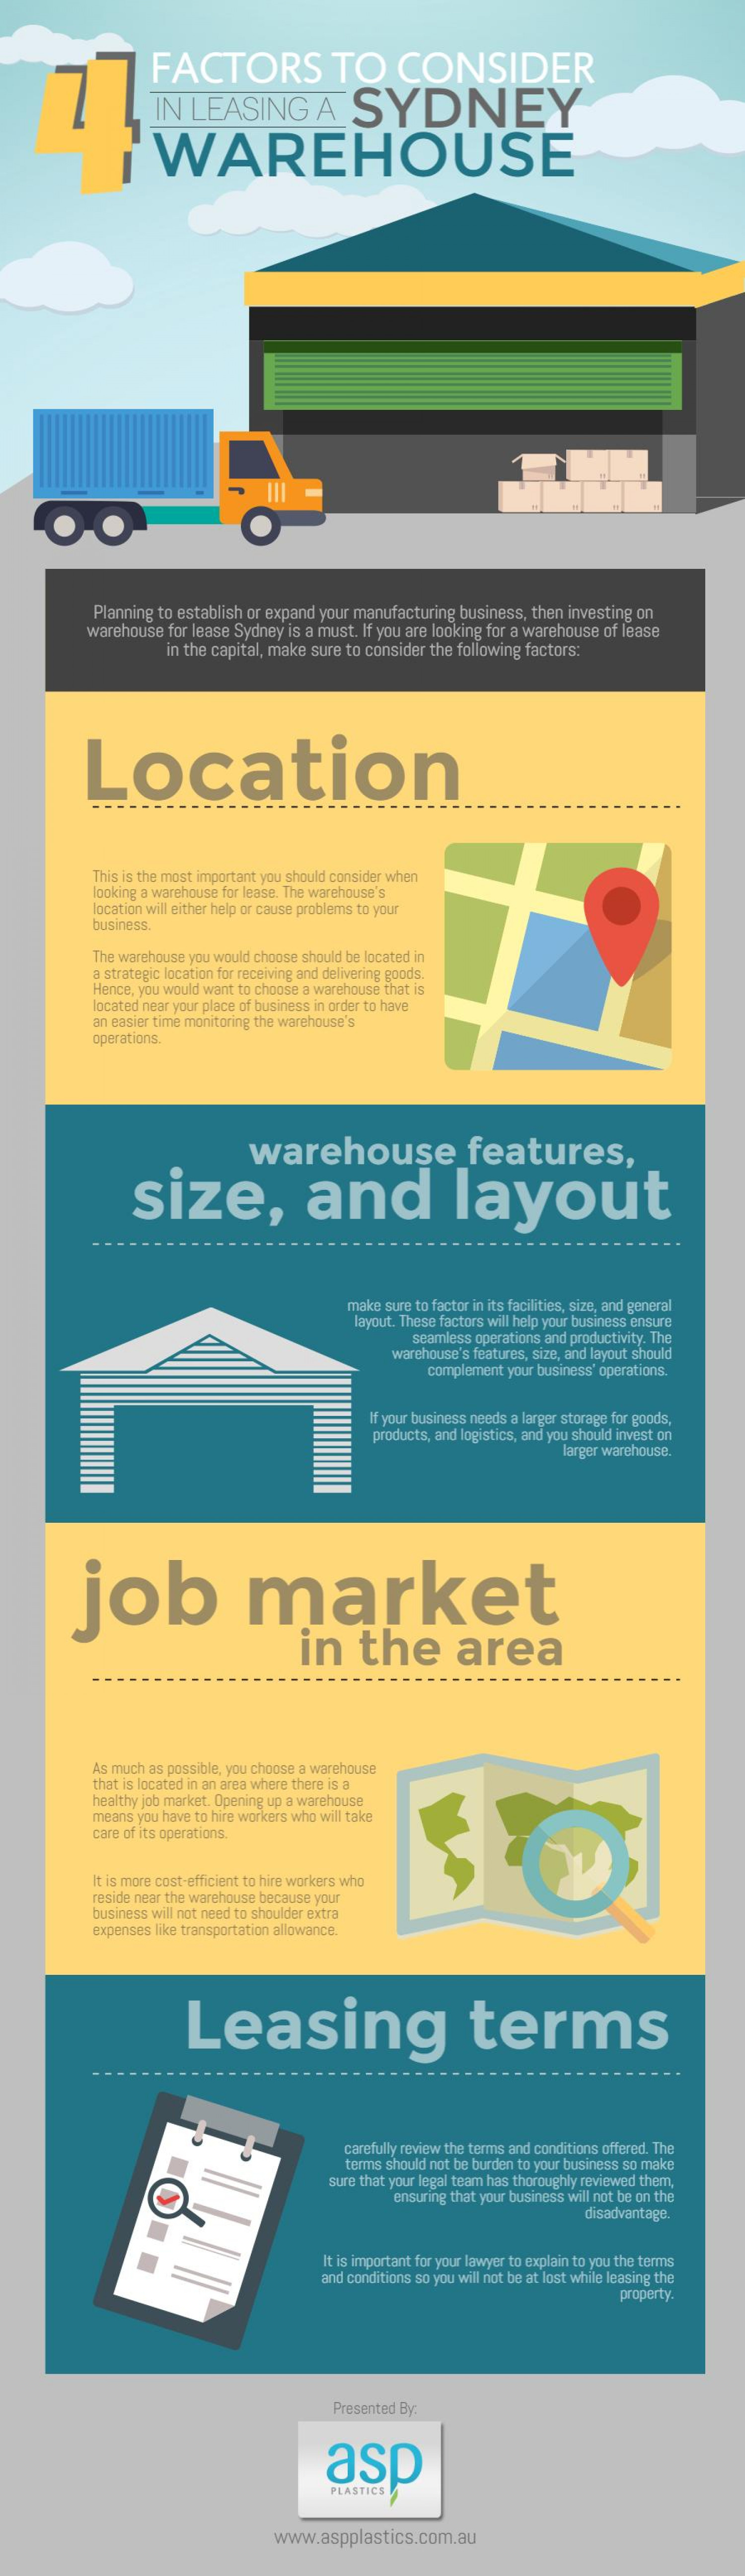 4 Factors To Consider in Leasing a Sydney Warehouse Infographic